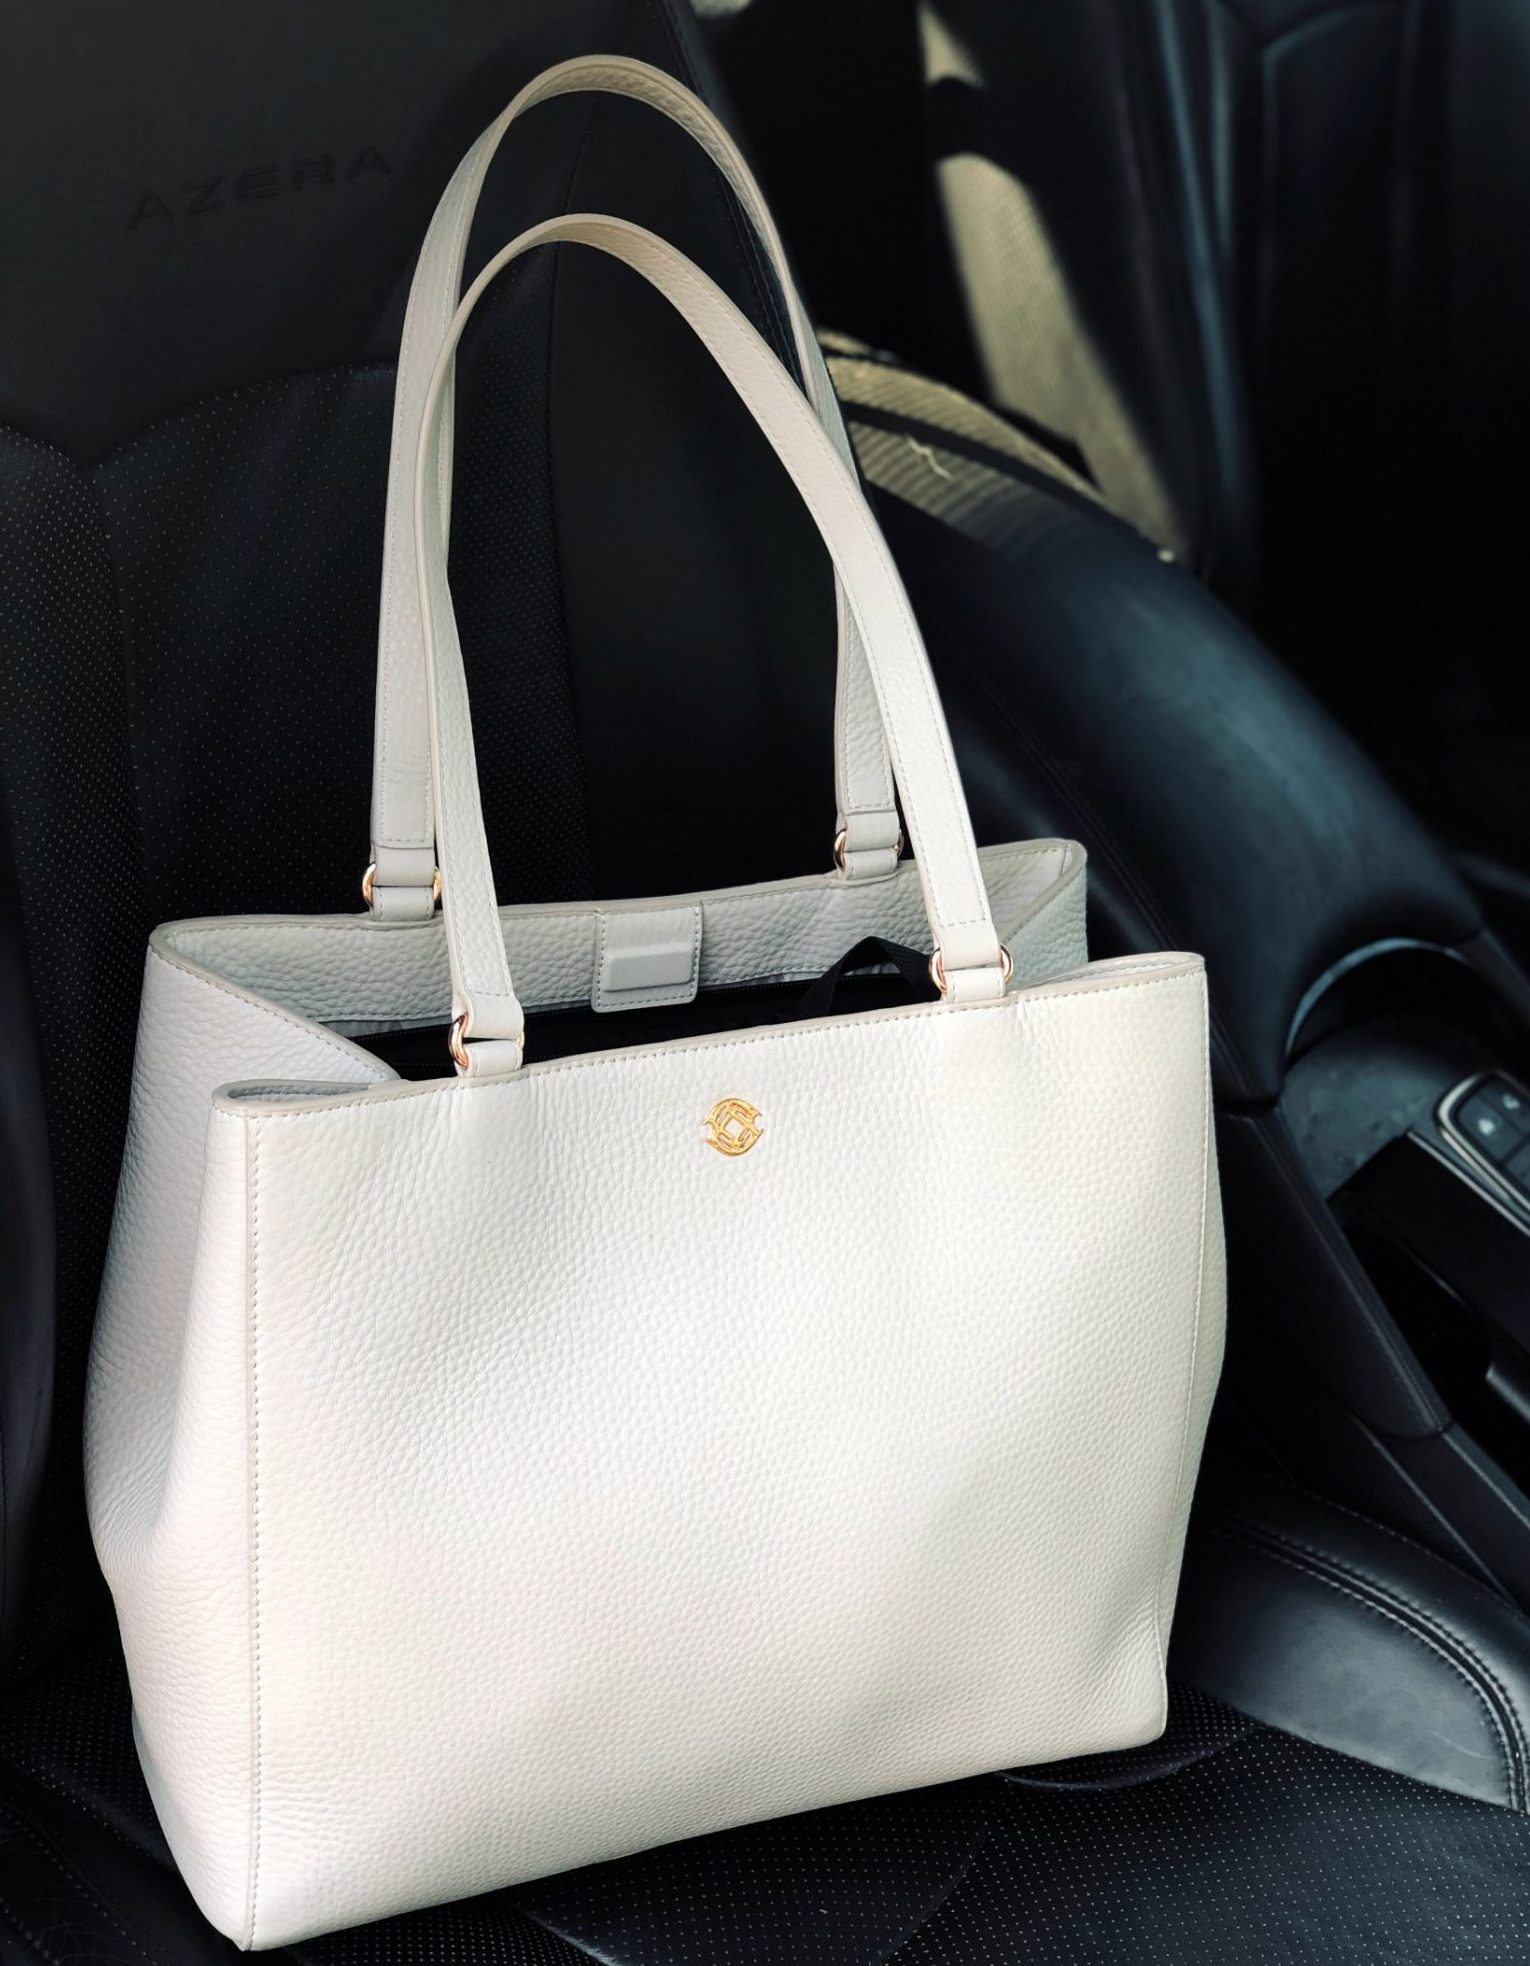 The Perfect Laptop Tote For Work Ft. Dagne Dover Medium Allyn Tote featured by US top Modest Blogger Dreaming Loud1